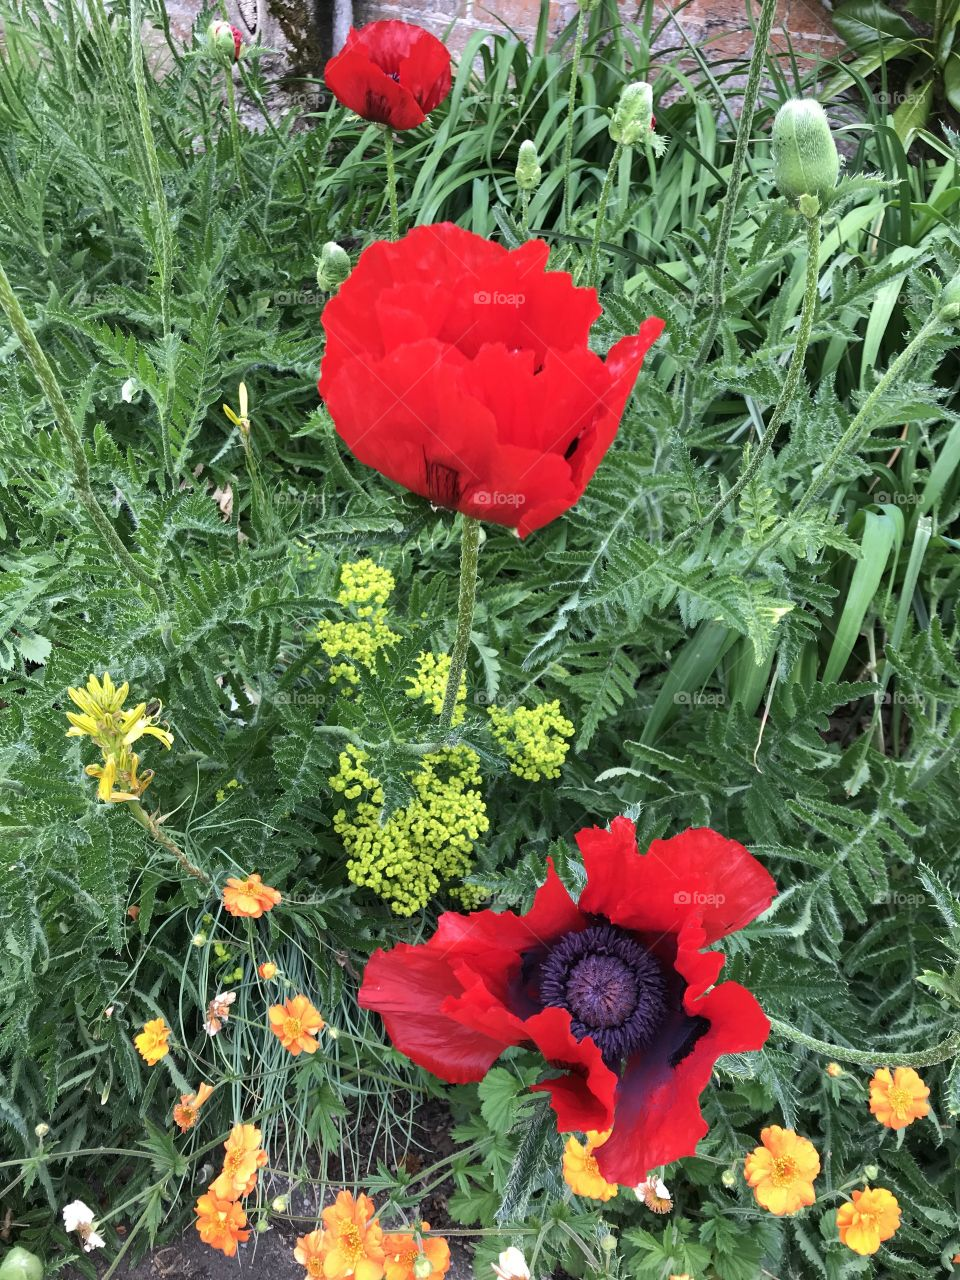 Some lovely examples of poppies in fine shape and giving a huge splash of color to these gardens.